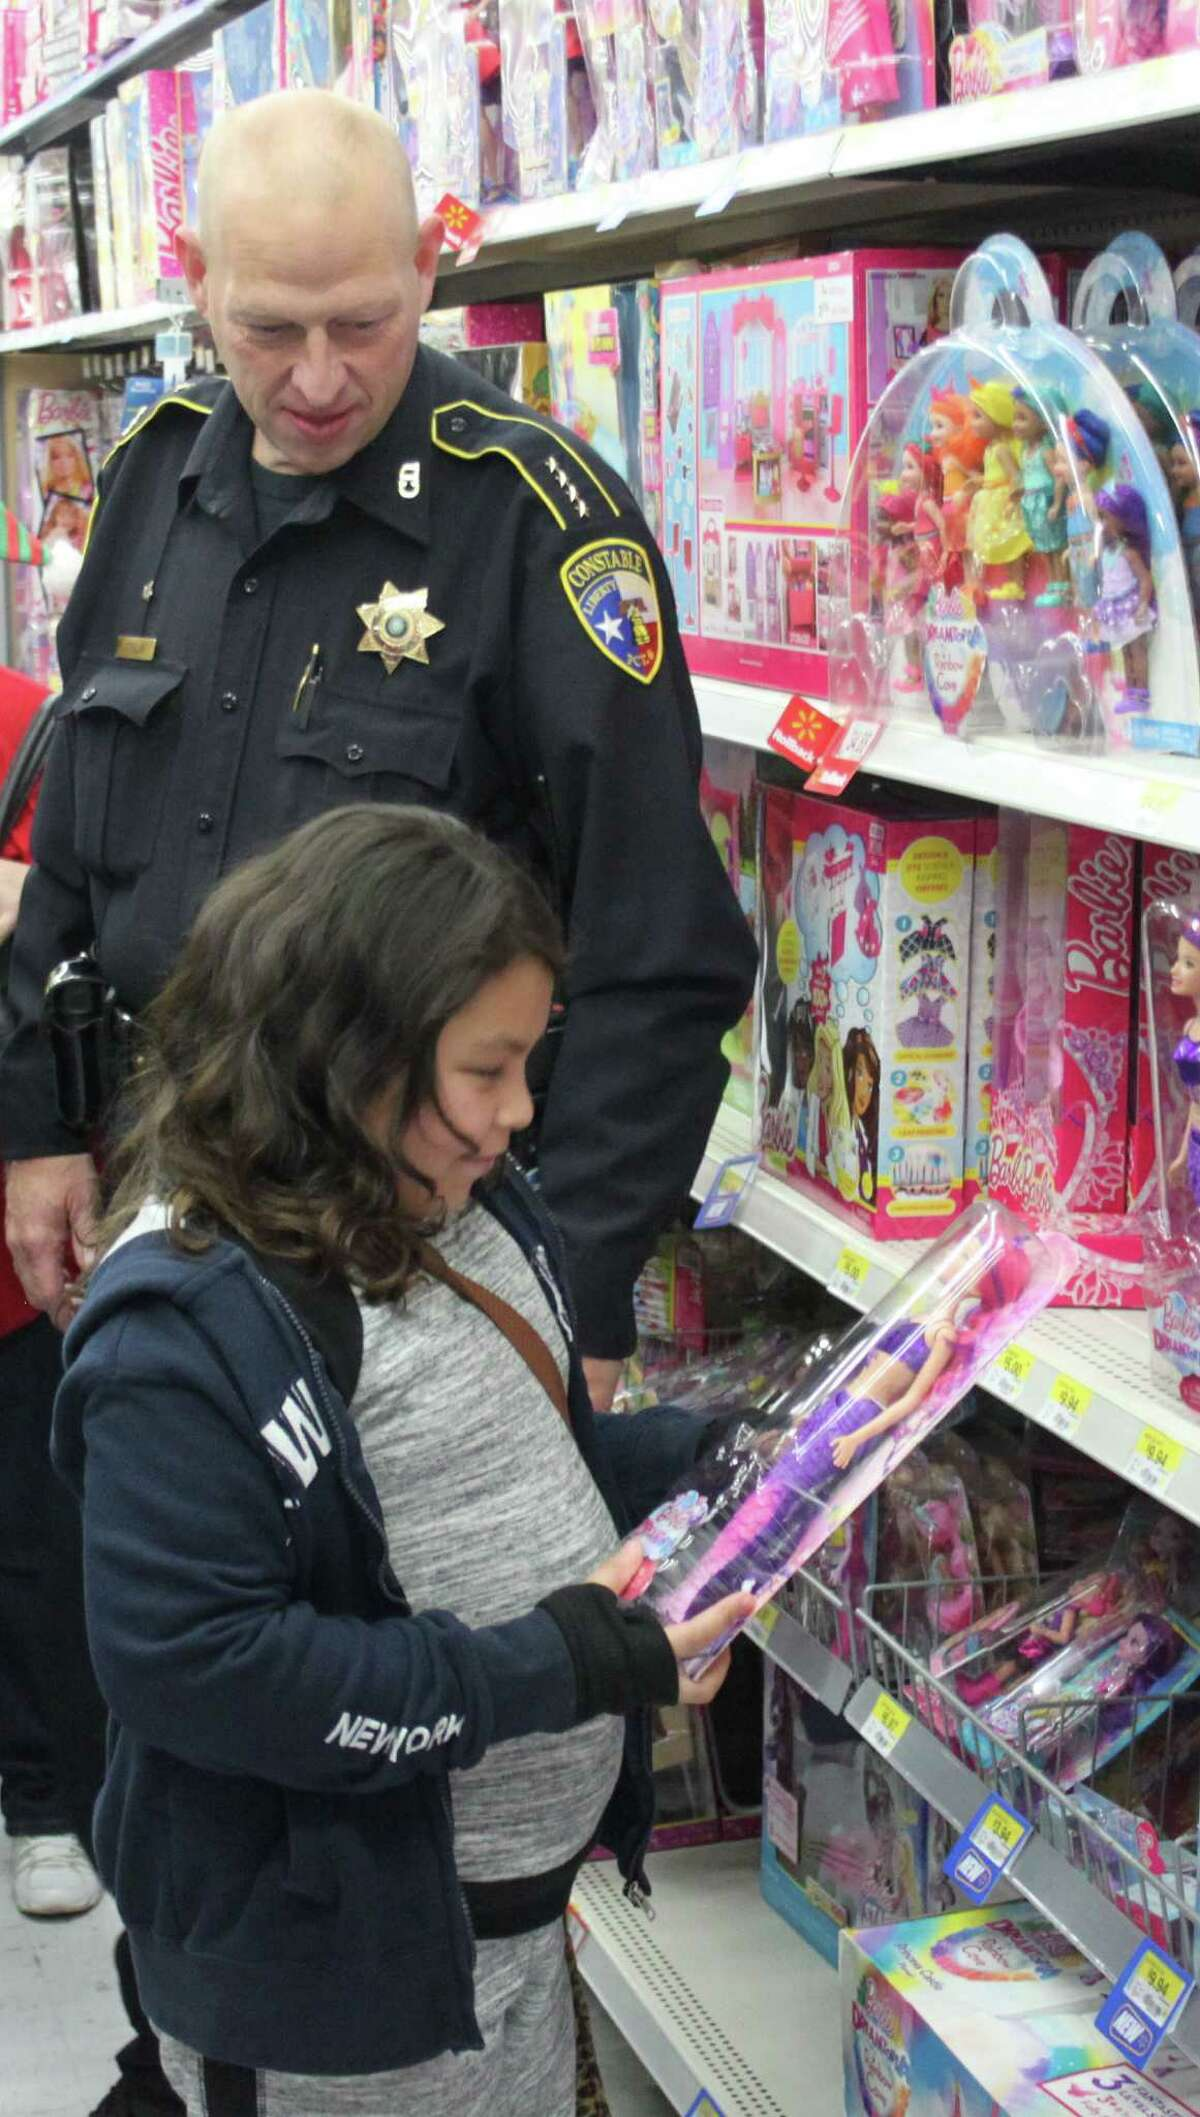 Liberty County Pct. 6 Constable John Joslin helps Juanita Moreno (front) pick out a new Barbie doll as part of the Shop with a Cop event at Cleveland Walmart.